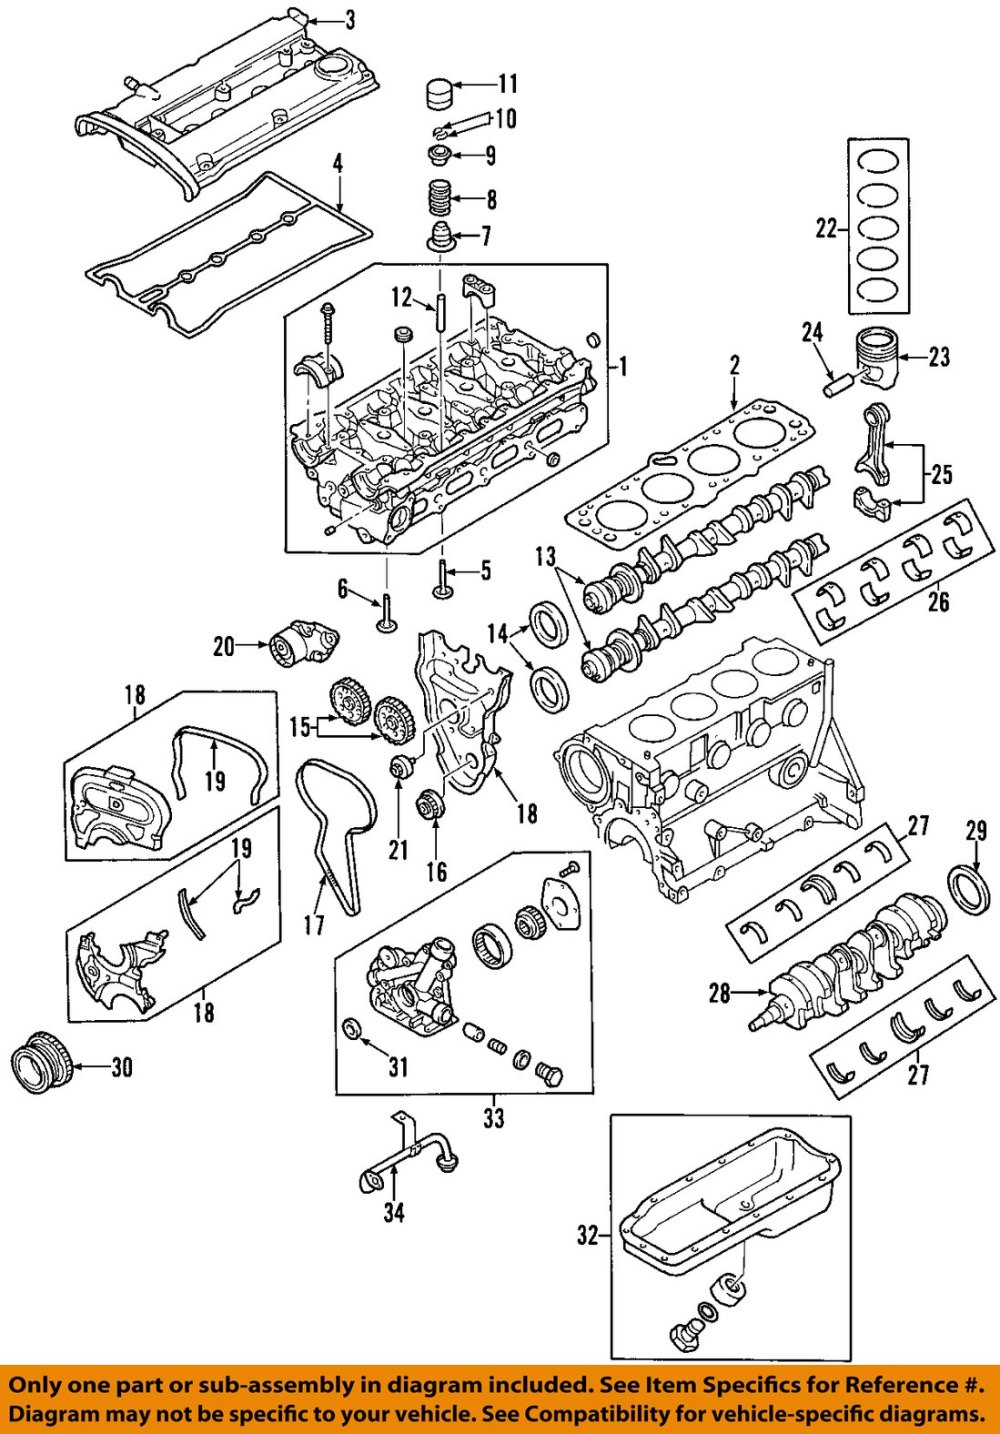 medium resolution of 2011 chevy aveo5 engine diagram wiring diagram img diagram 2009 chevy aveo engine chevy silverado engine diagram chevy